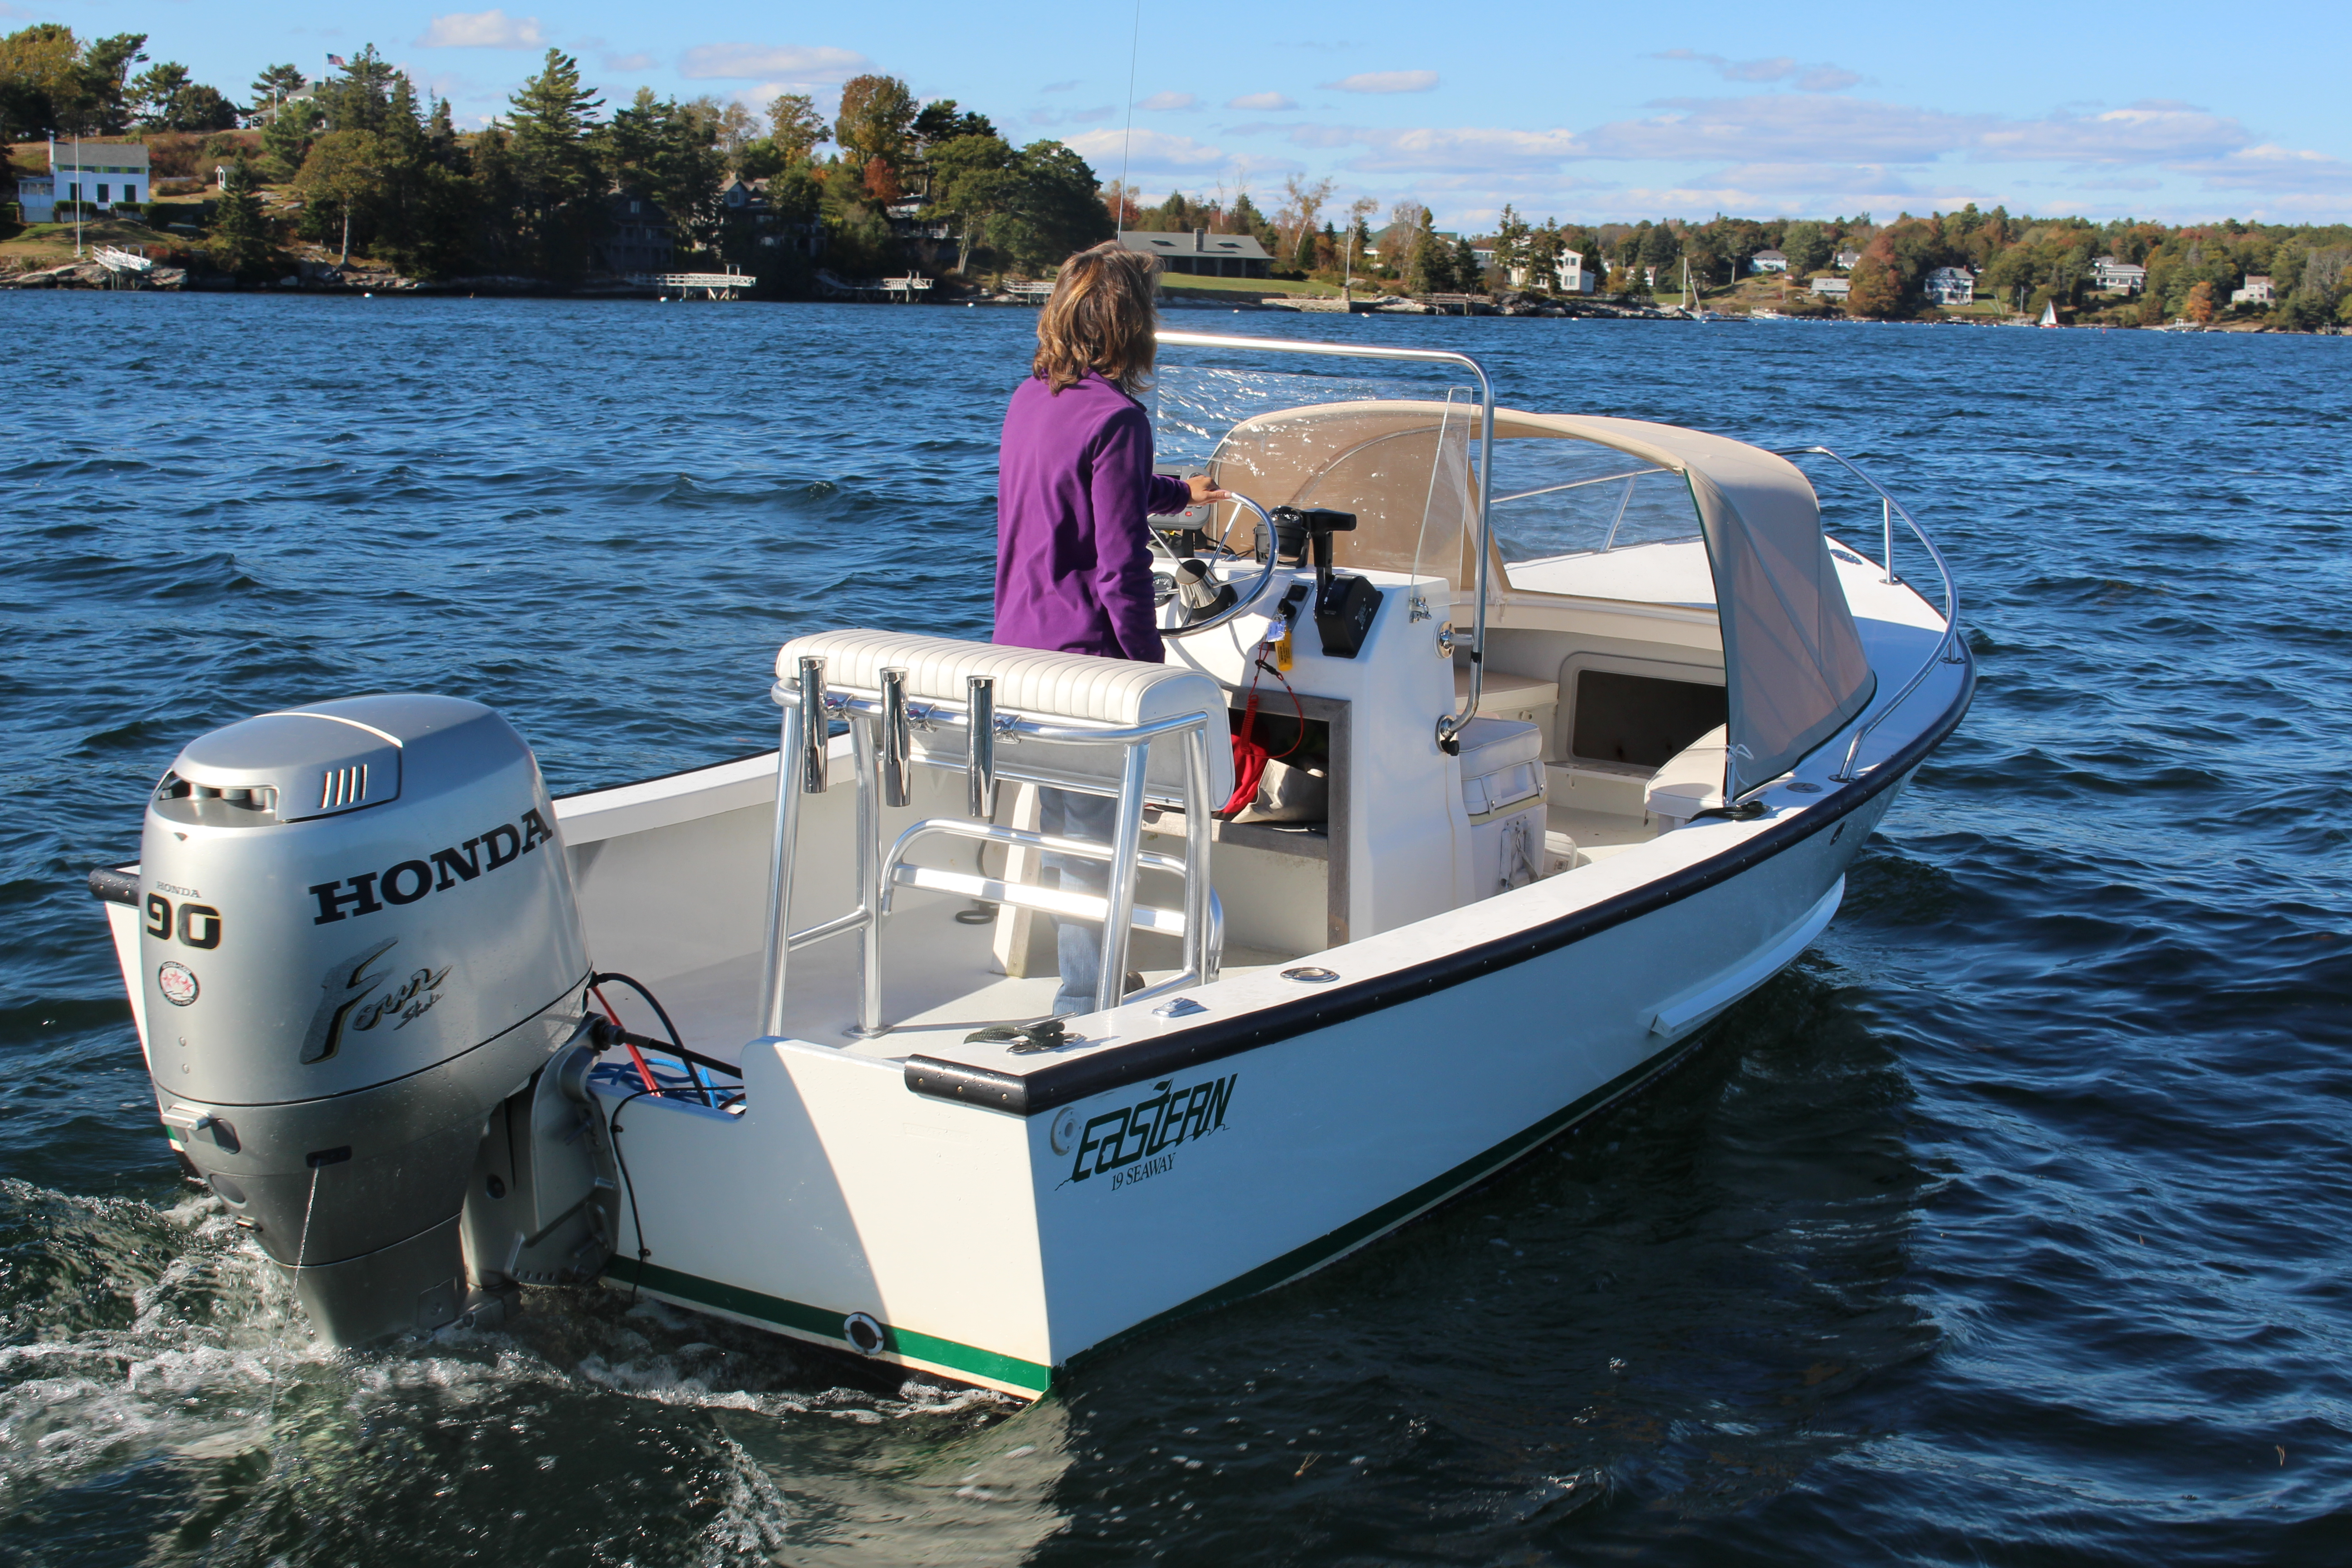 Eastern 19 Center-Console - Boat Rentals on Boothbay Harbor